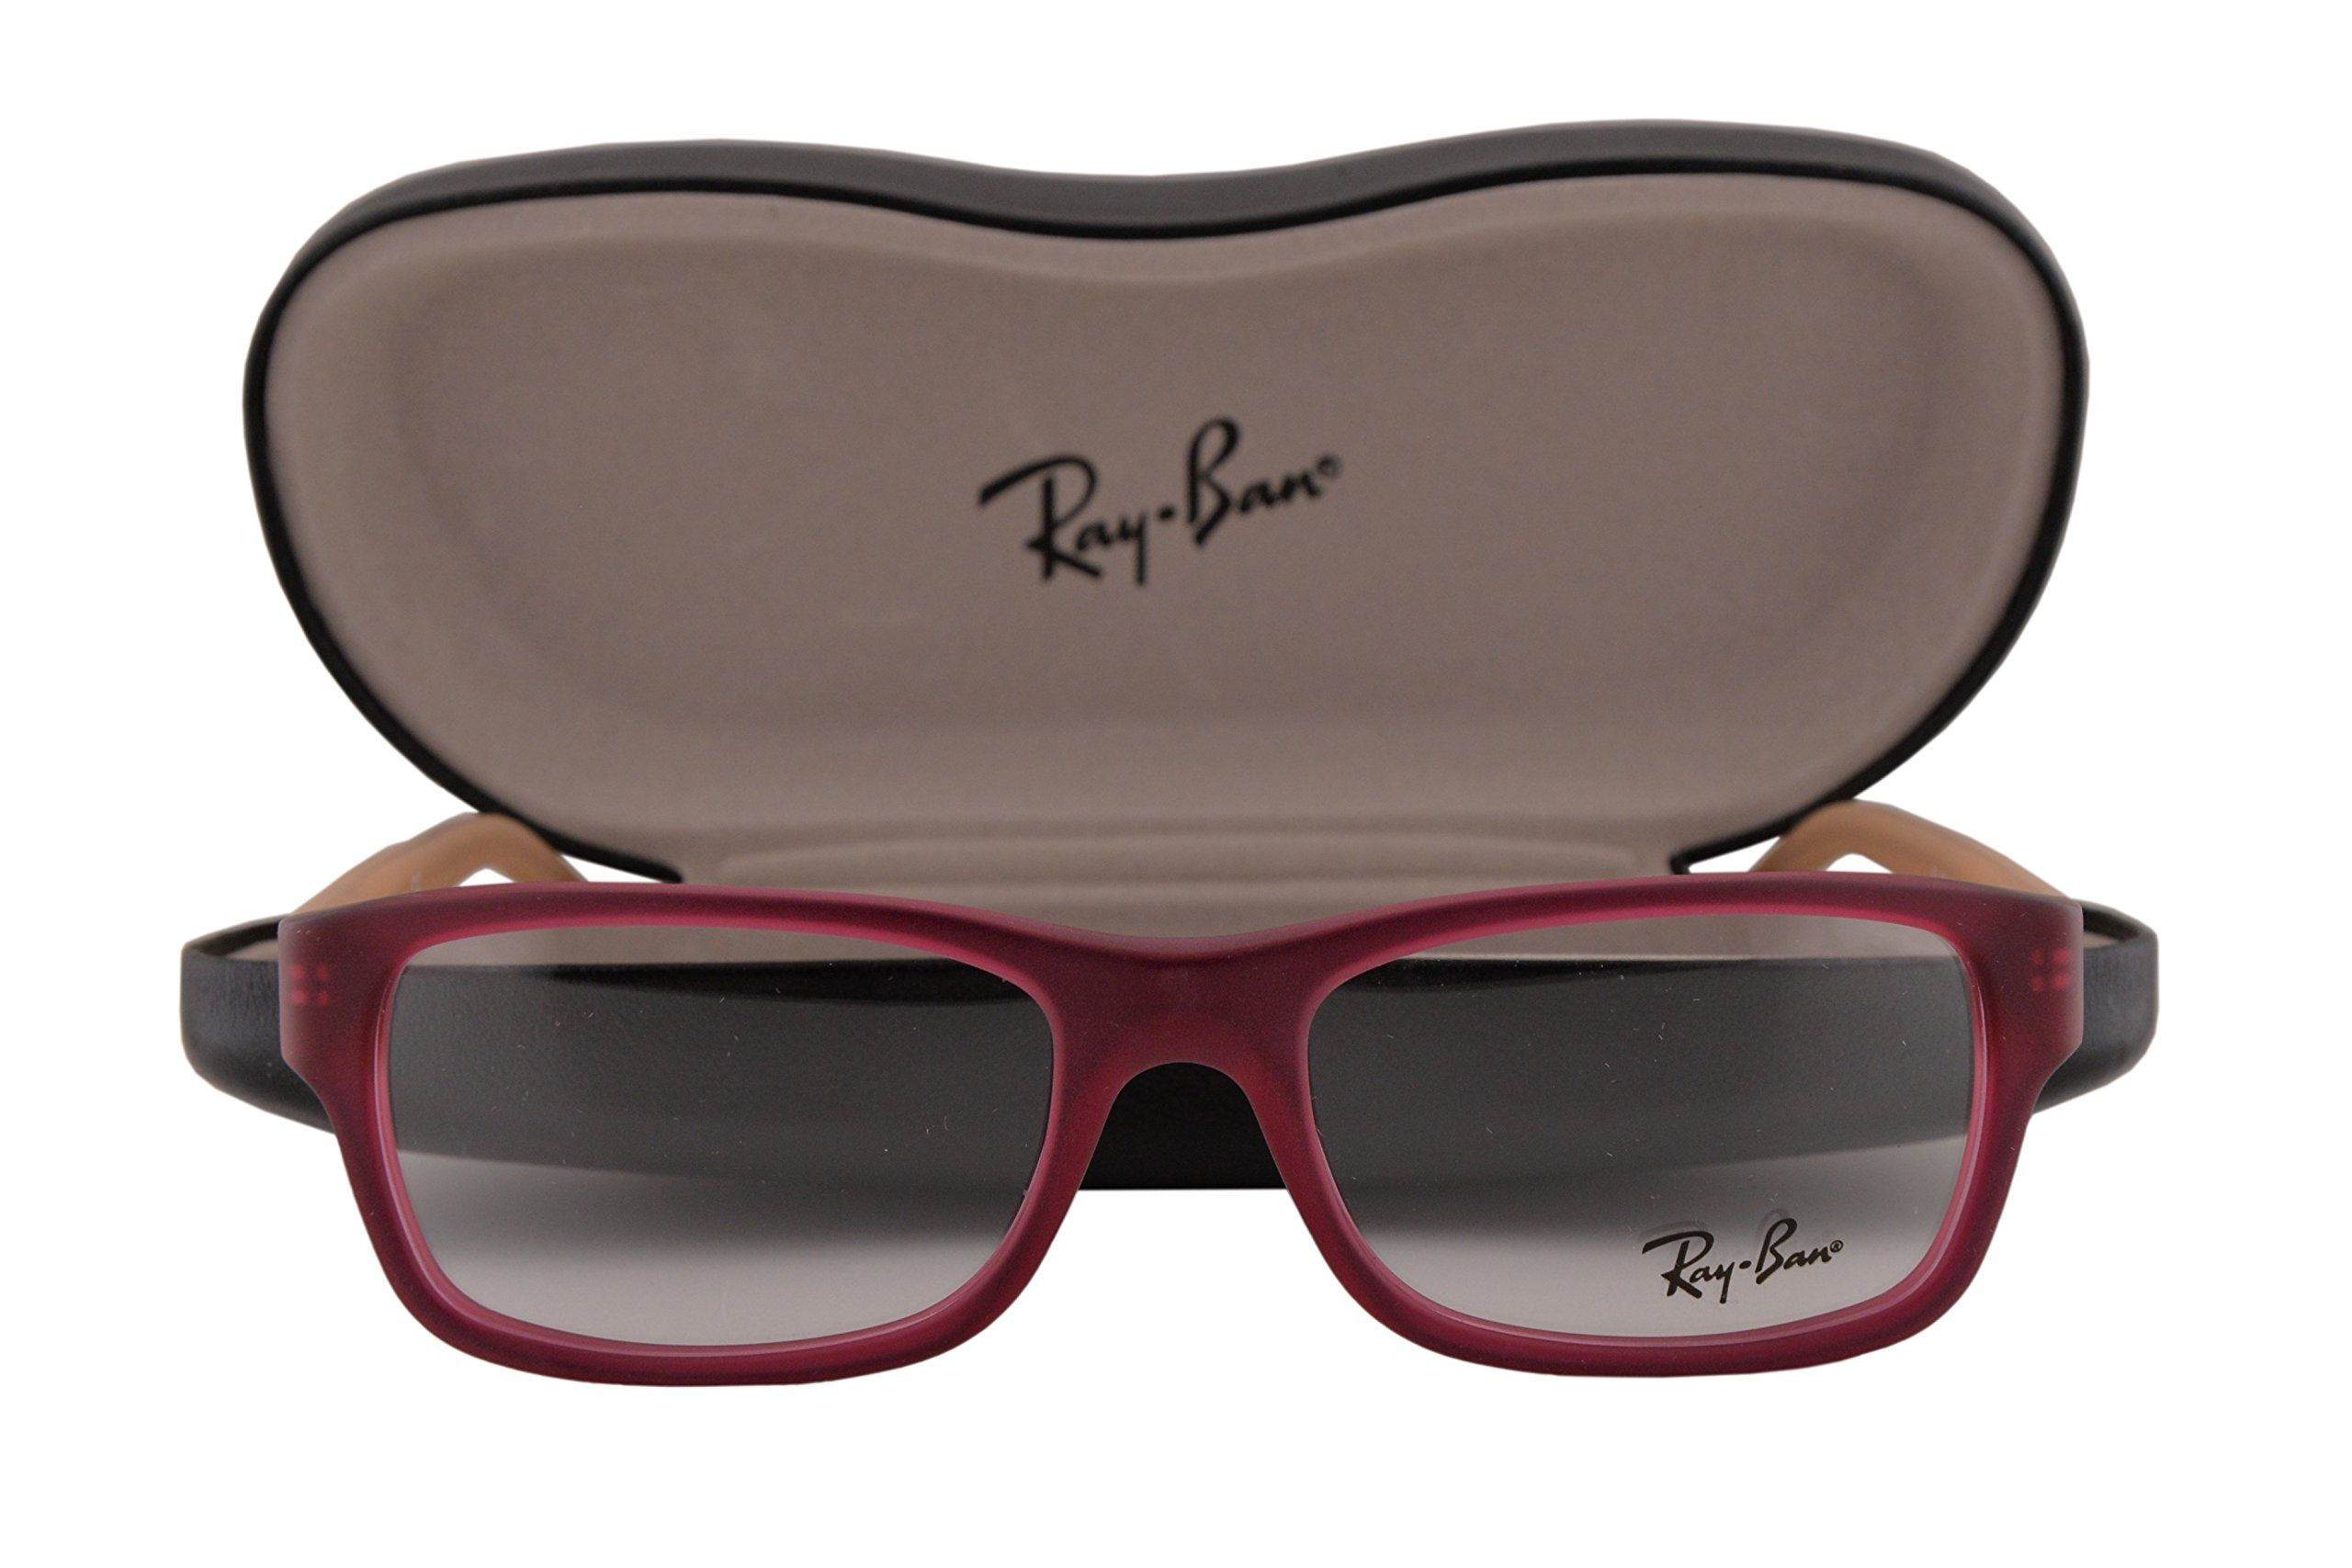 Ray Ban RX5268 Eyeglasses 48-17-135 Matte Violet Red 5553 RX 5268. Ray Ban Eyewear. Model: RX5268. Color Code: 5553 Matte Violet Red w/NON-WEARABLE CLEAR DEMO lens. Designer eyewear comes with original case and cleaning cloth. If the glasses arrive slightly crooked, it is natural, and they will return to their original shape when your lenses are installed. We handle prescription orders! Email us for details! Visit our storefront: www.amazon.com/shops/A1WUXX7TFM8VUI.